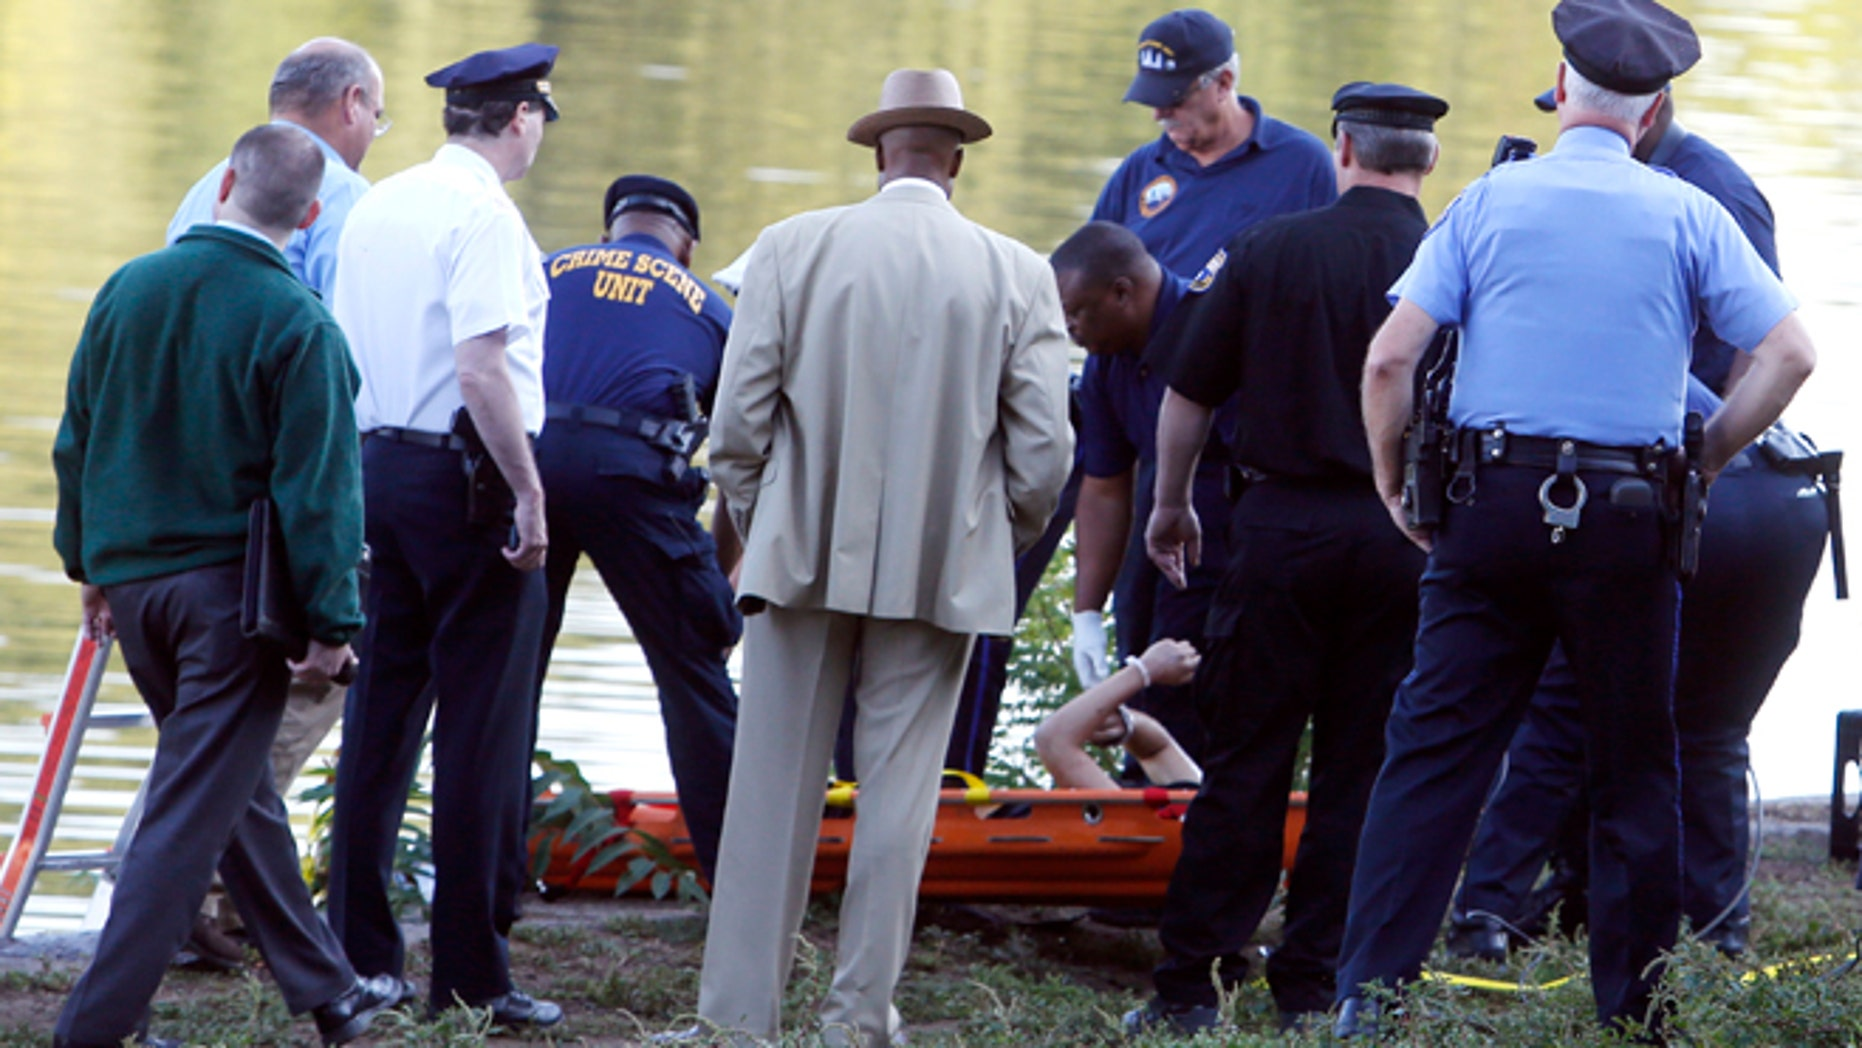 Aug. 27: Philadelphia police and other law enforcement officials view a body pulled from the Schuylkill River in Fairmount Park in Philadelphia. The bound bodies of two people were found in the river Wednesday, and a third man who said he managed to free himself is being treated at a hospital for stab wounds, police said.